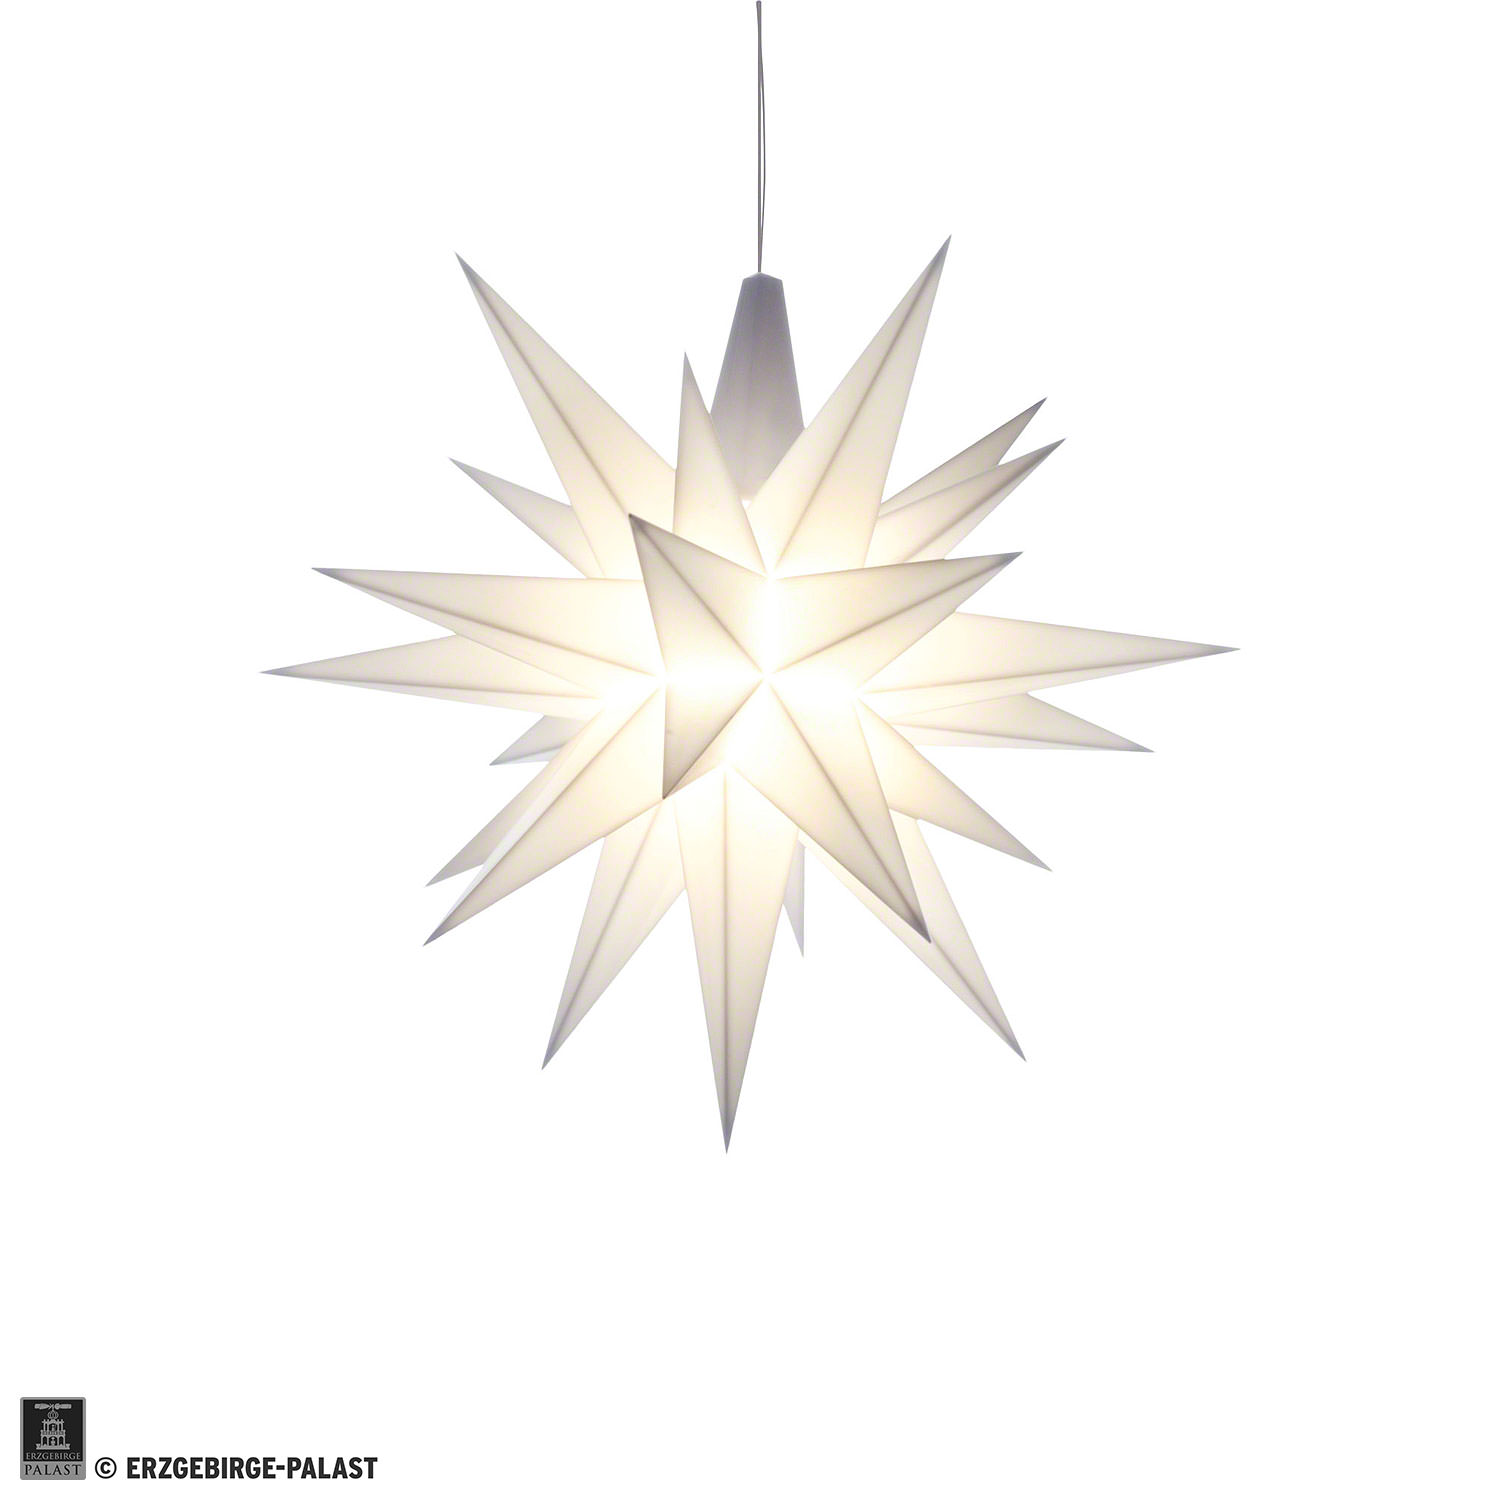 Herrnhuter Moravian Star A1e White Plastic 13 Cm51in By